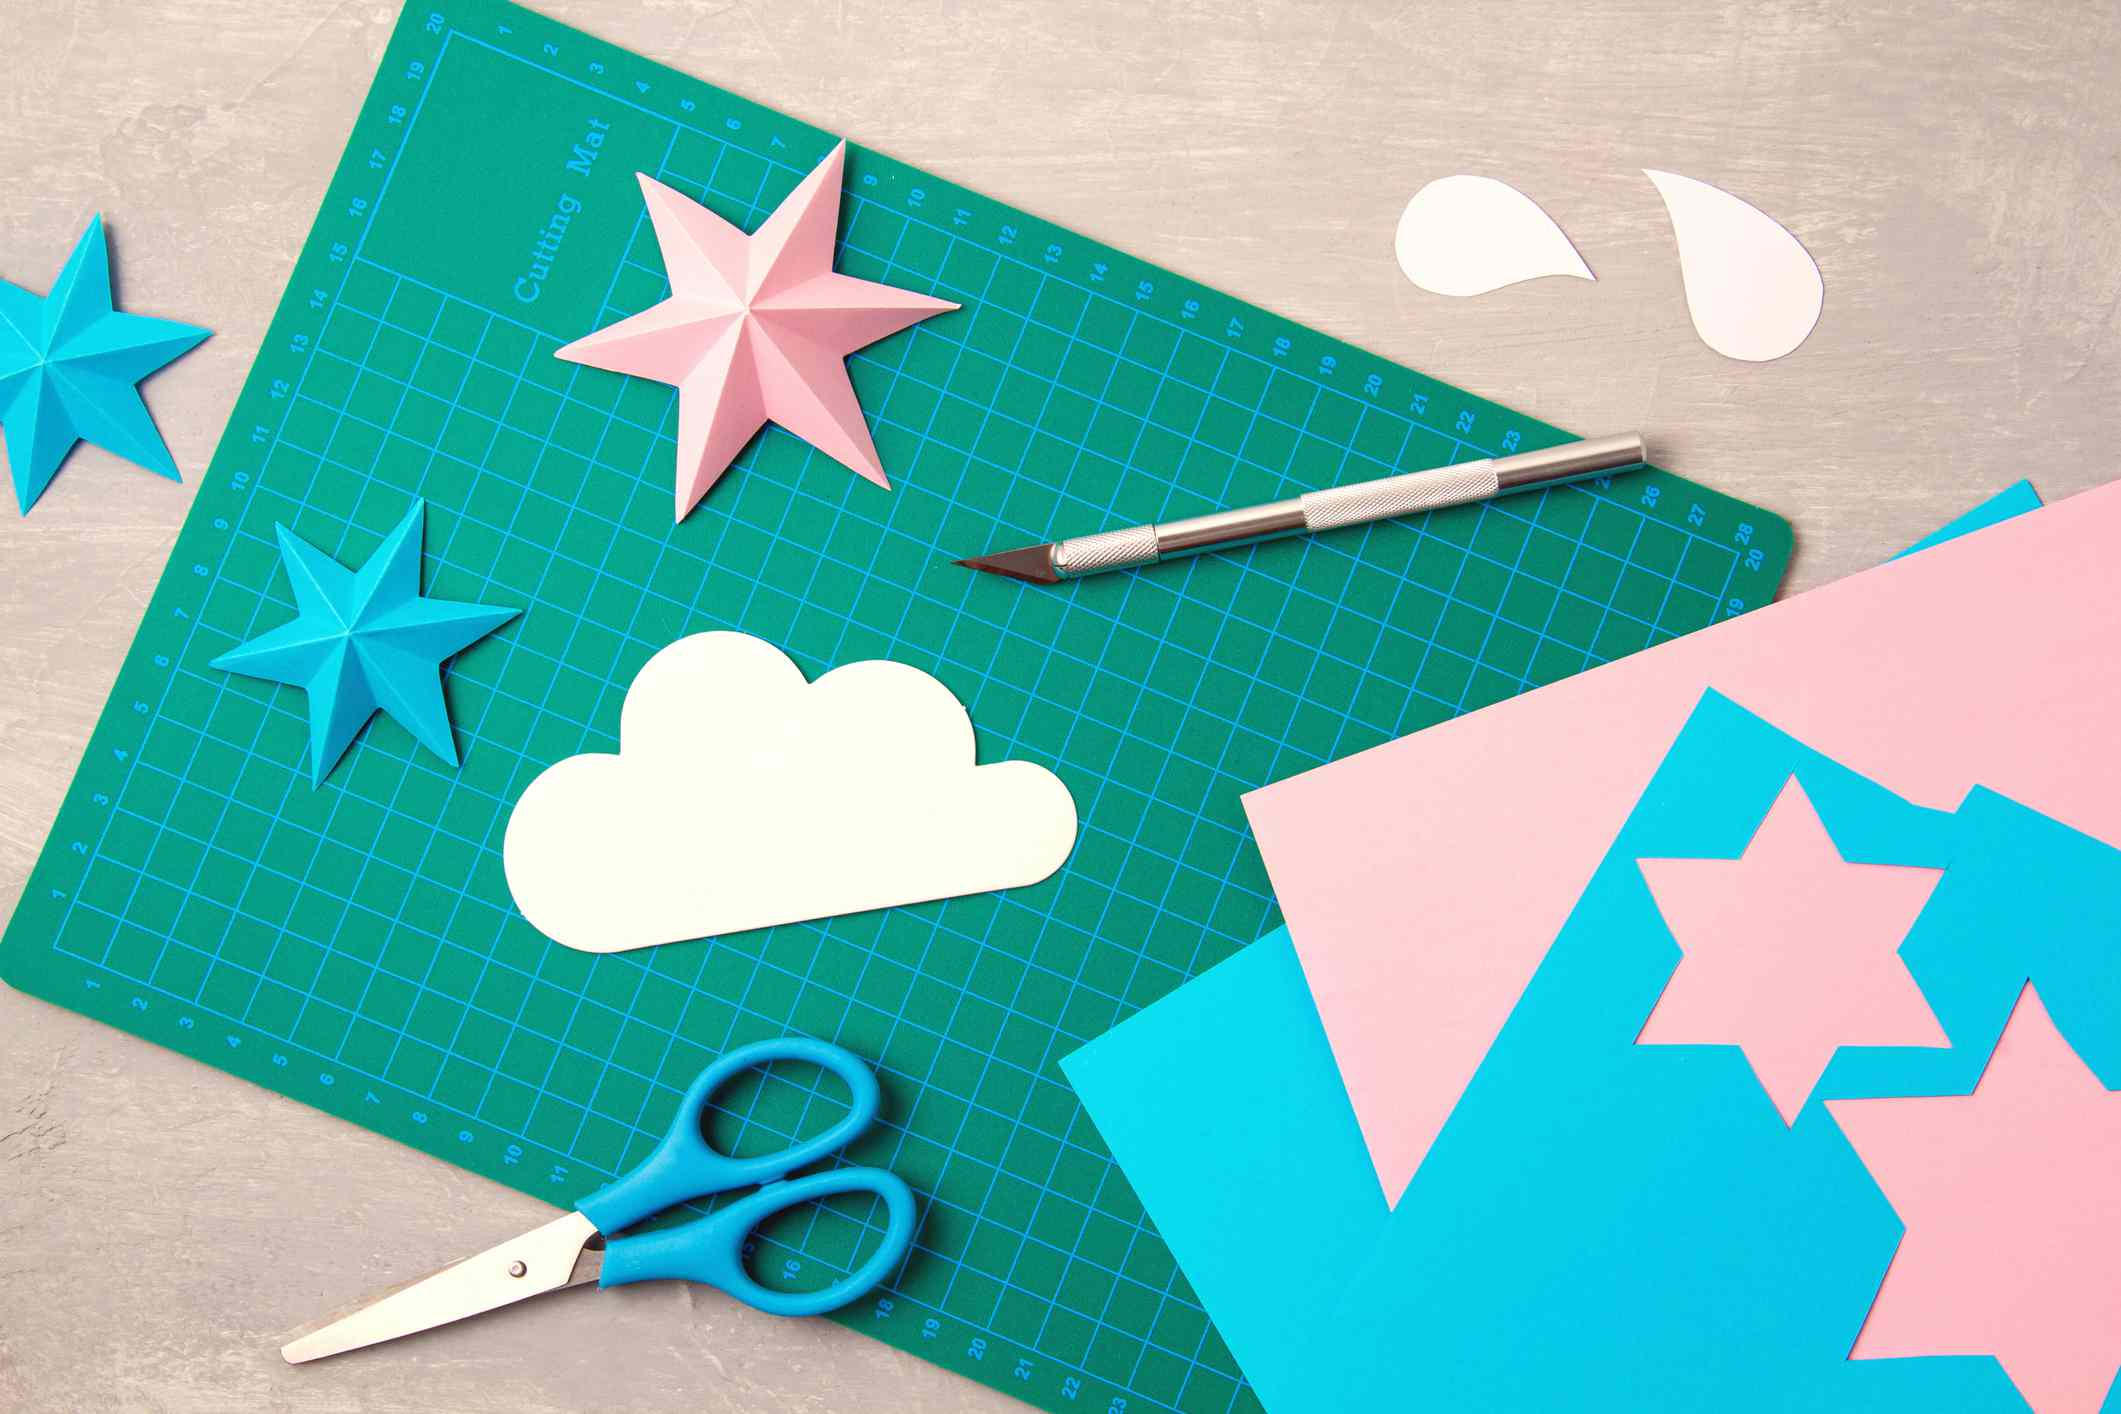 Top view over paper cut tools, scissors, cutter, cutting mat, and crafted paper objects. DIY trendy project concept